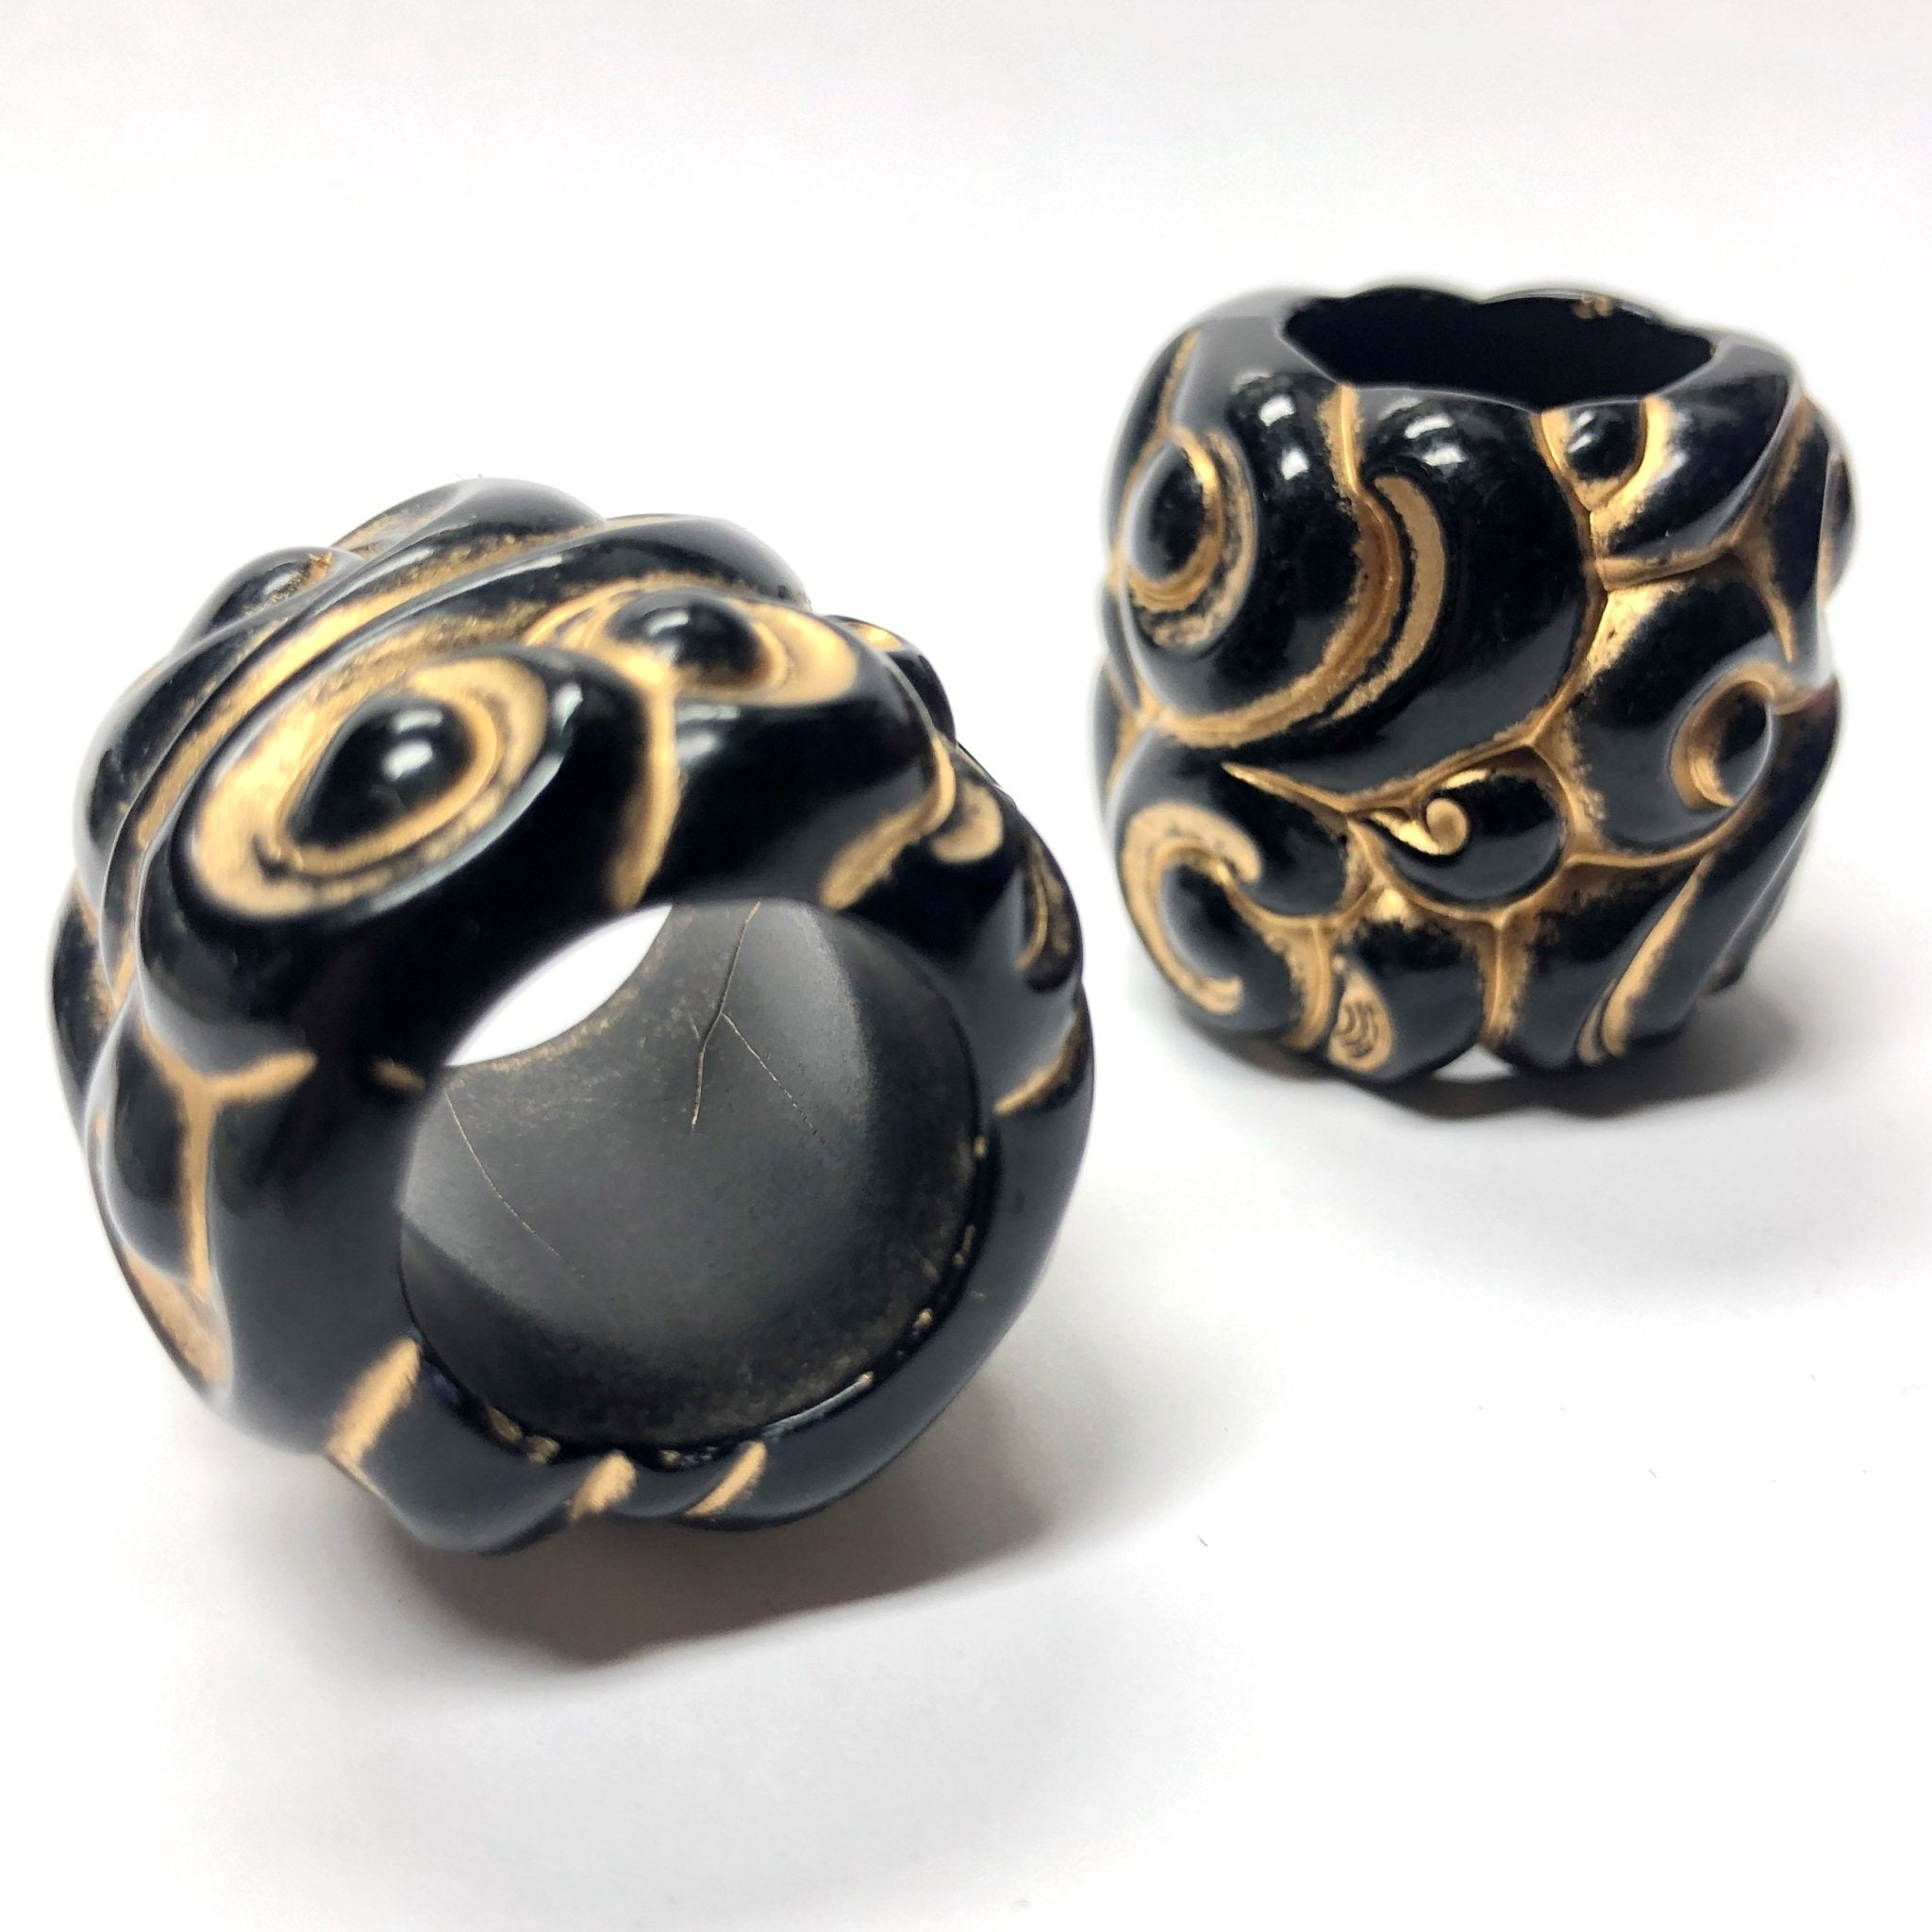 27MM Black-Gold Fancy Large Hole Acrylic Bead (12 pieces)